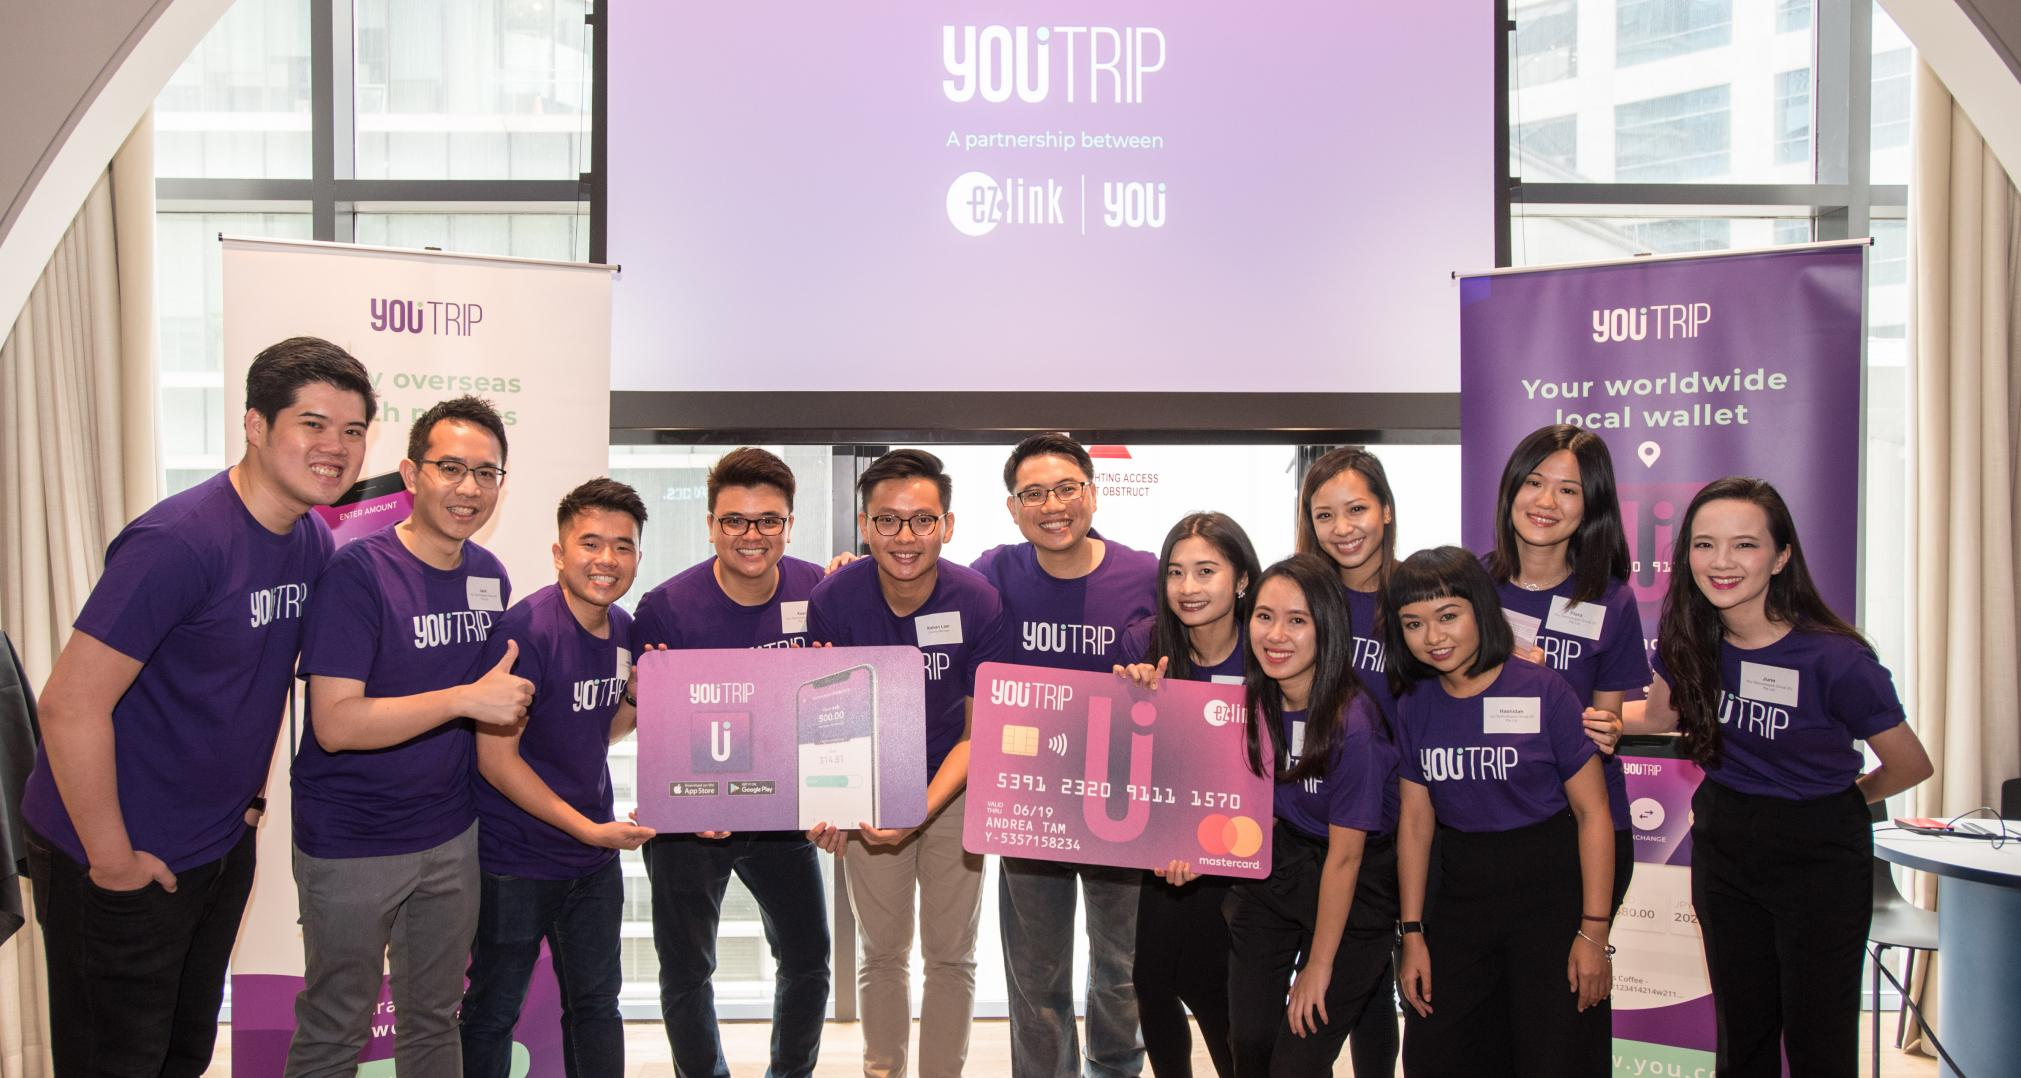 The YouTrip service in Singapore is integrated with Singapore's EZ-Tap payment system. Image: TechCrunch.com